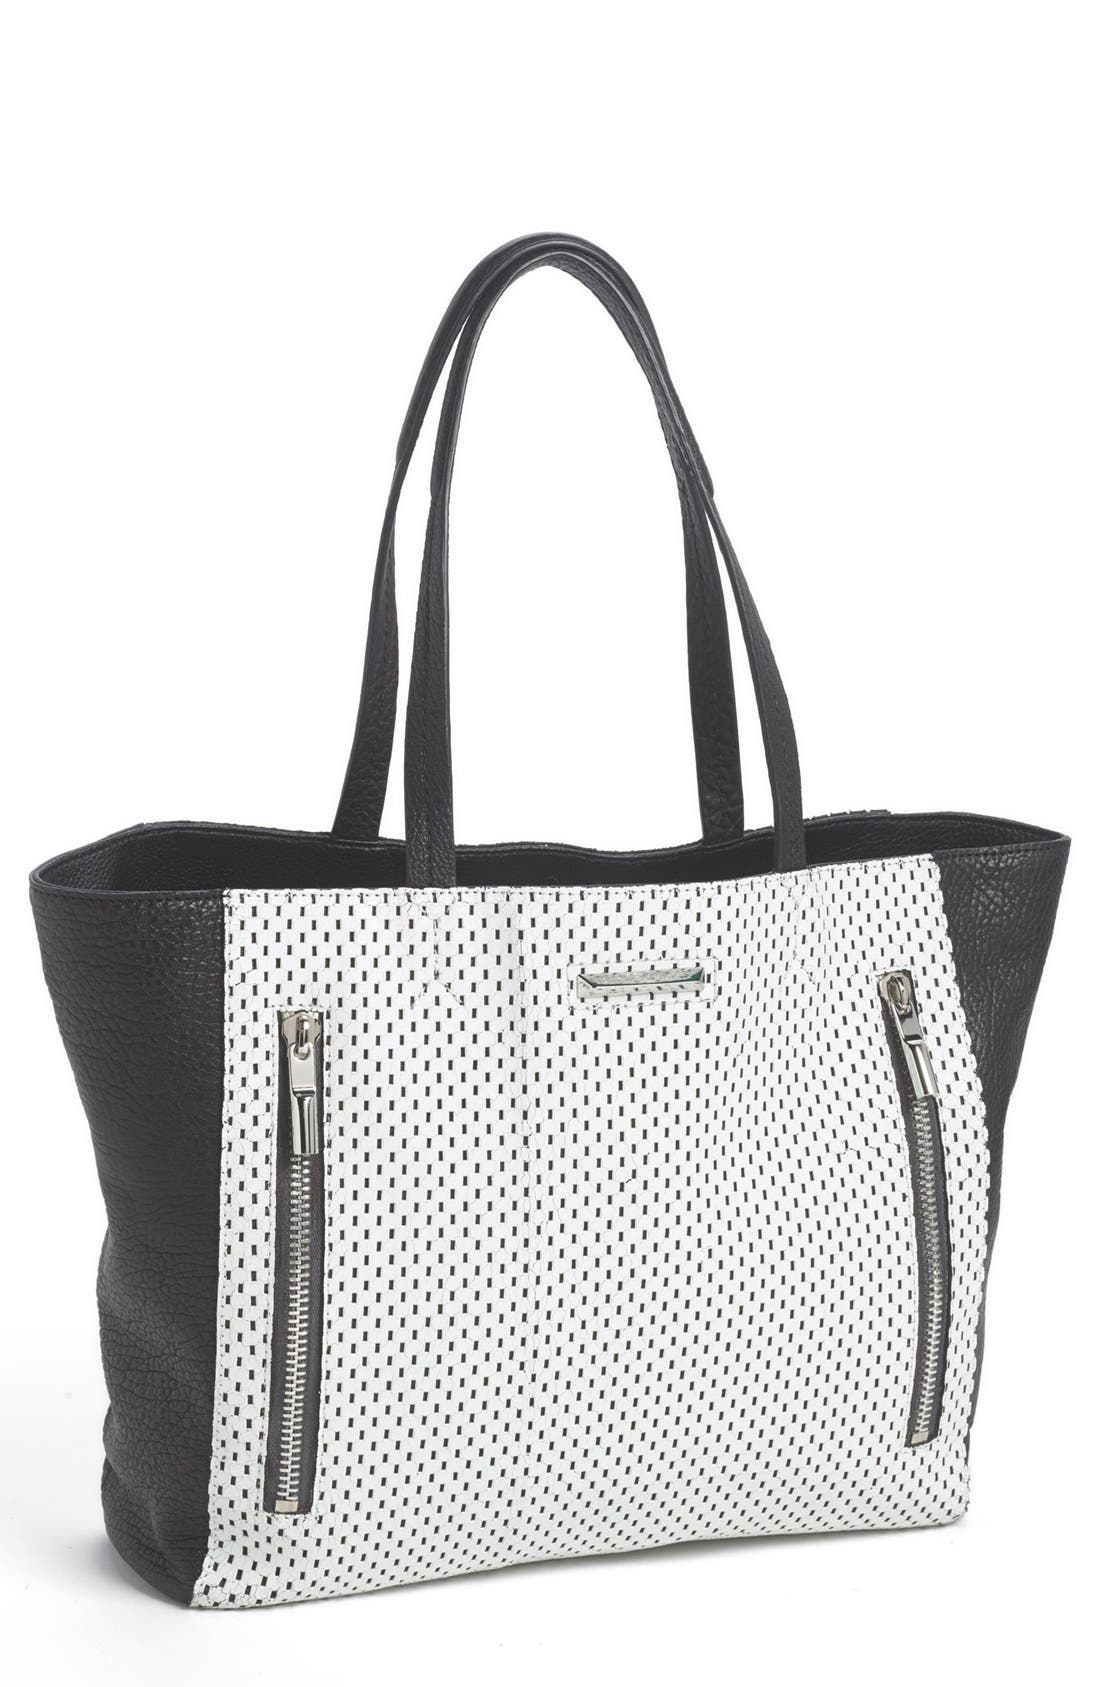 Main Image - Elizabeth and James 'Cynnie' Tote